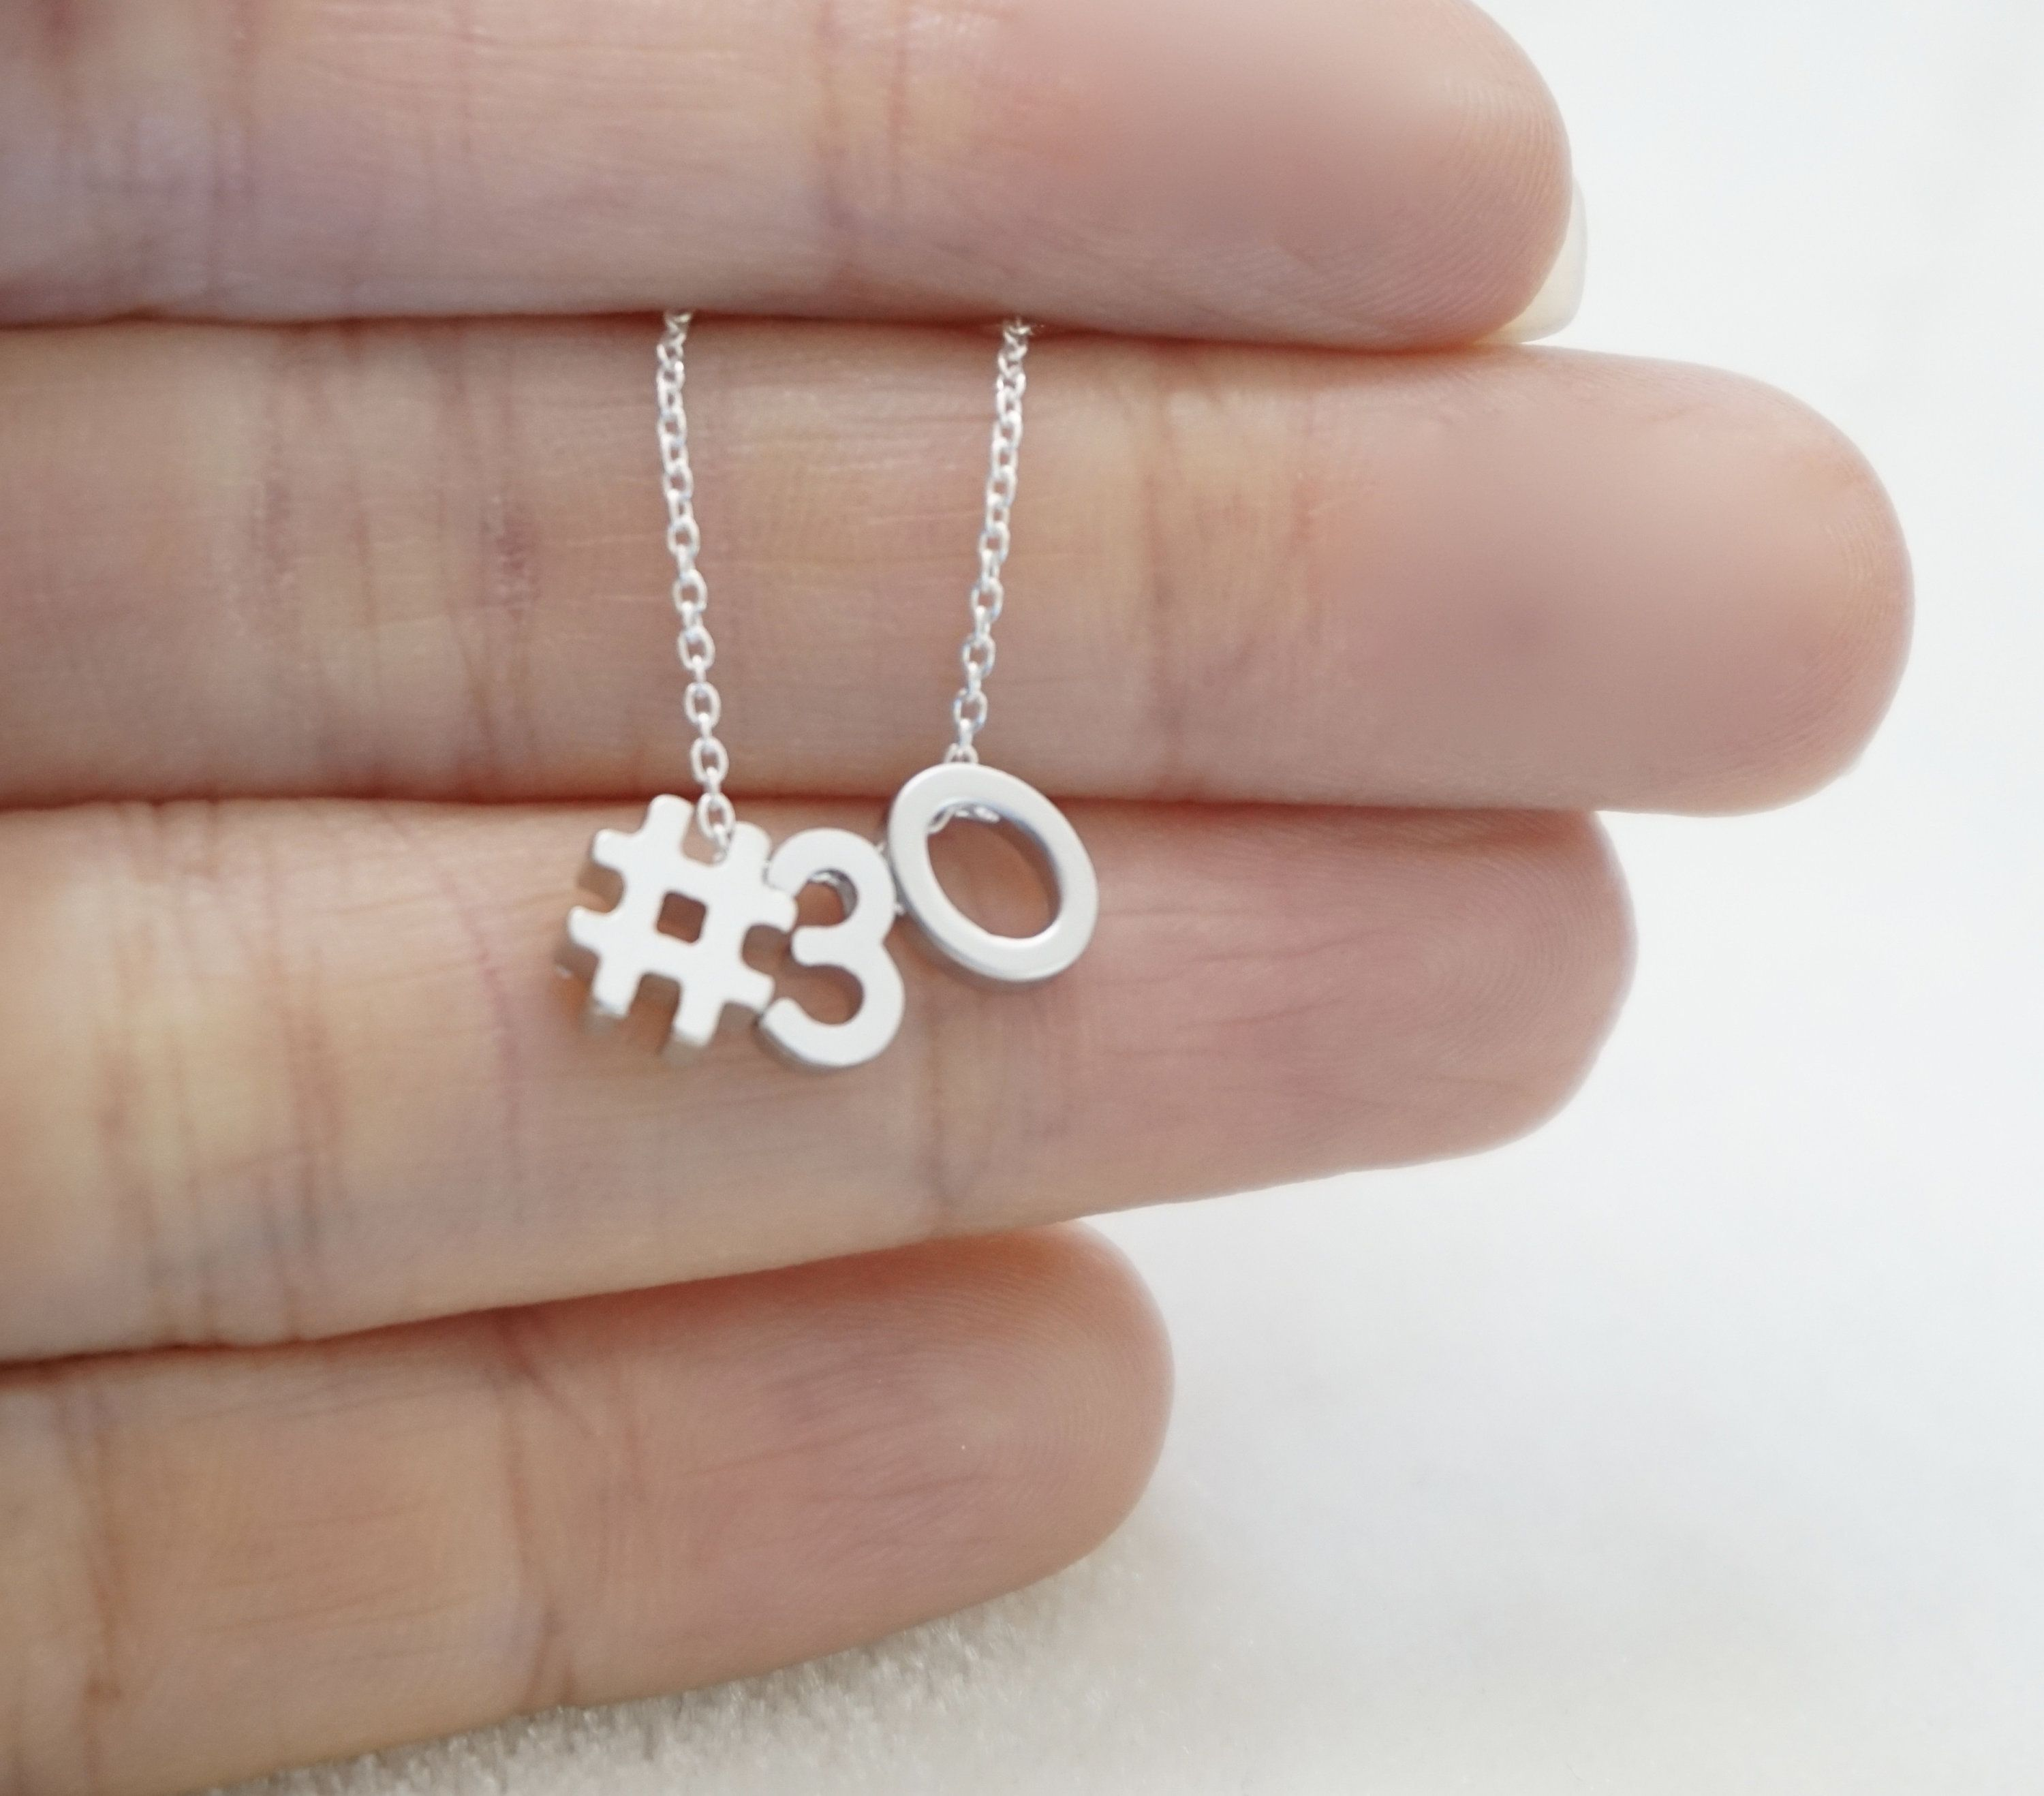 diamond necklace enlarged alex jewelry the number necklaces pendant woo products